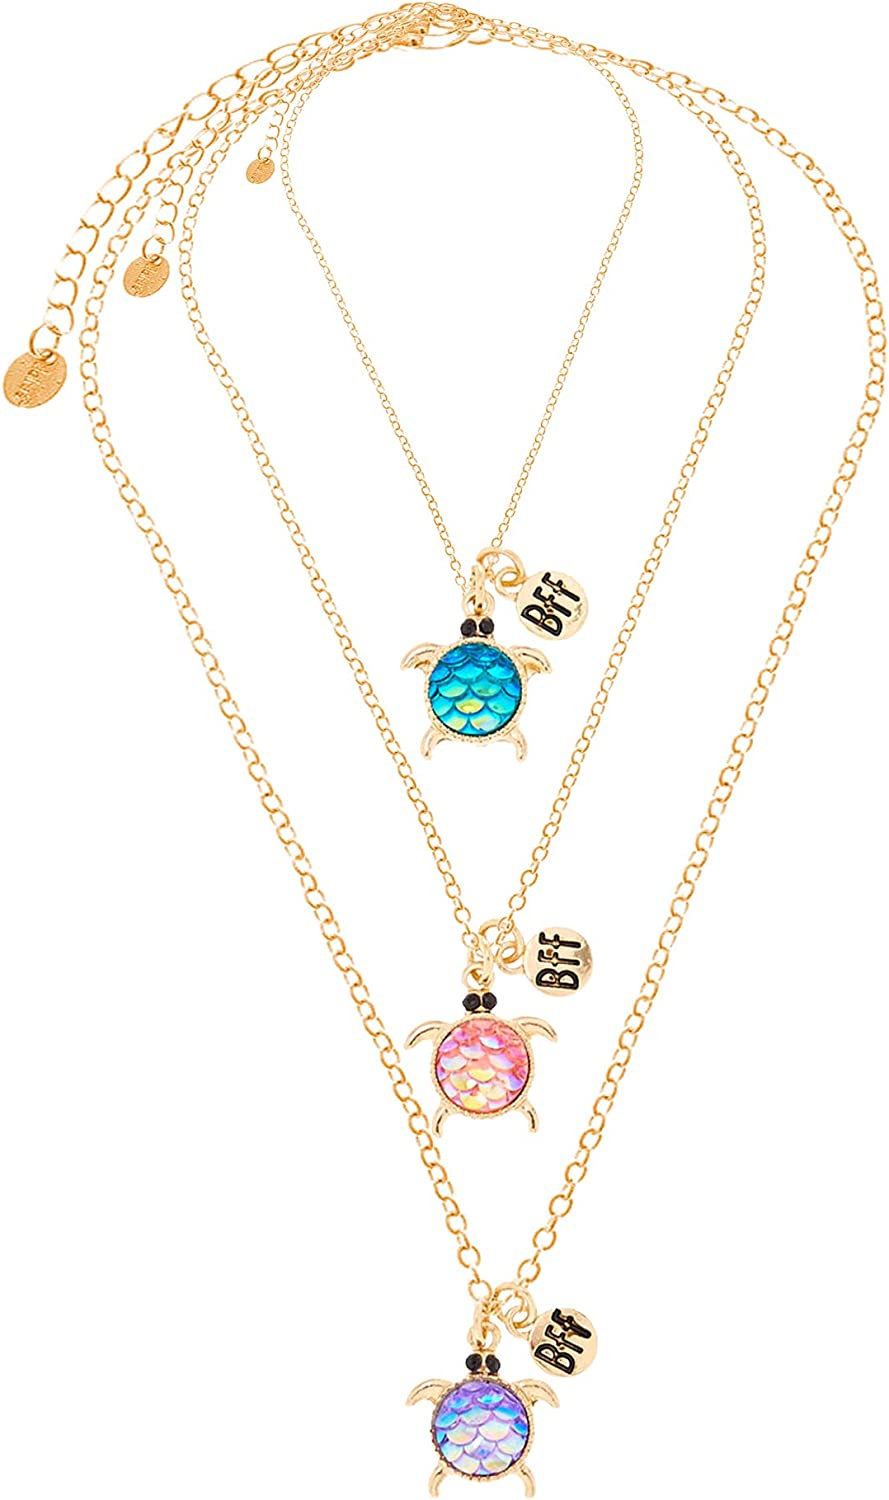 Claire's Matching Pendant Best Friends Necklaces, Assorted Styles, 16 Inches Long